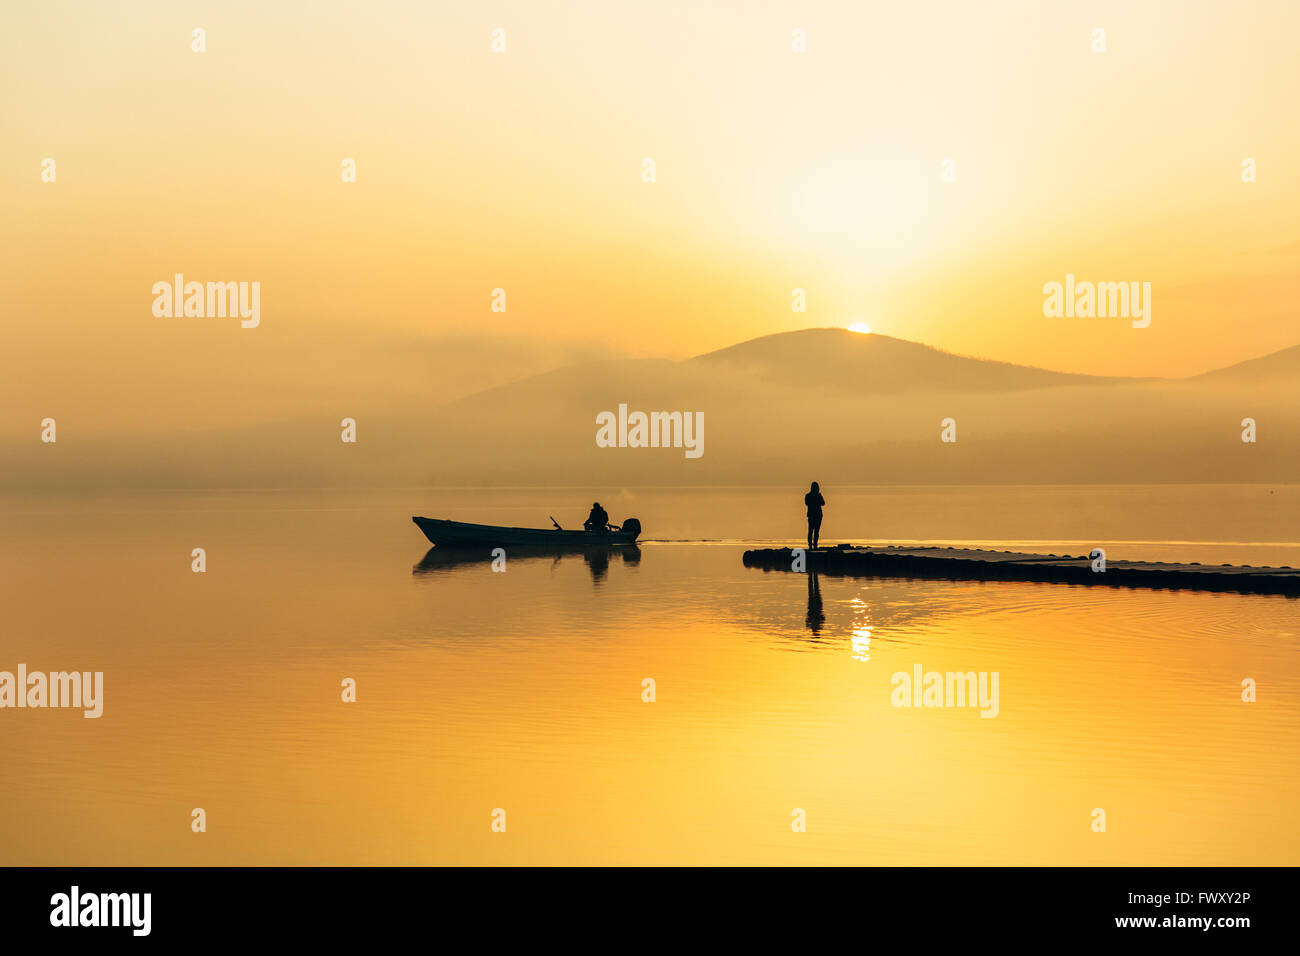 Japan, Izu Peninsula, Silhouettes of two people in boat and on jetty - Stock Image